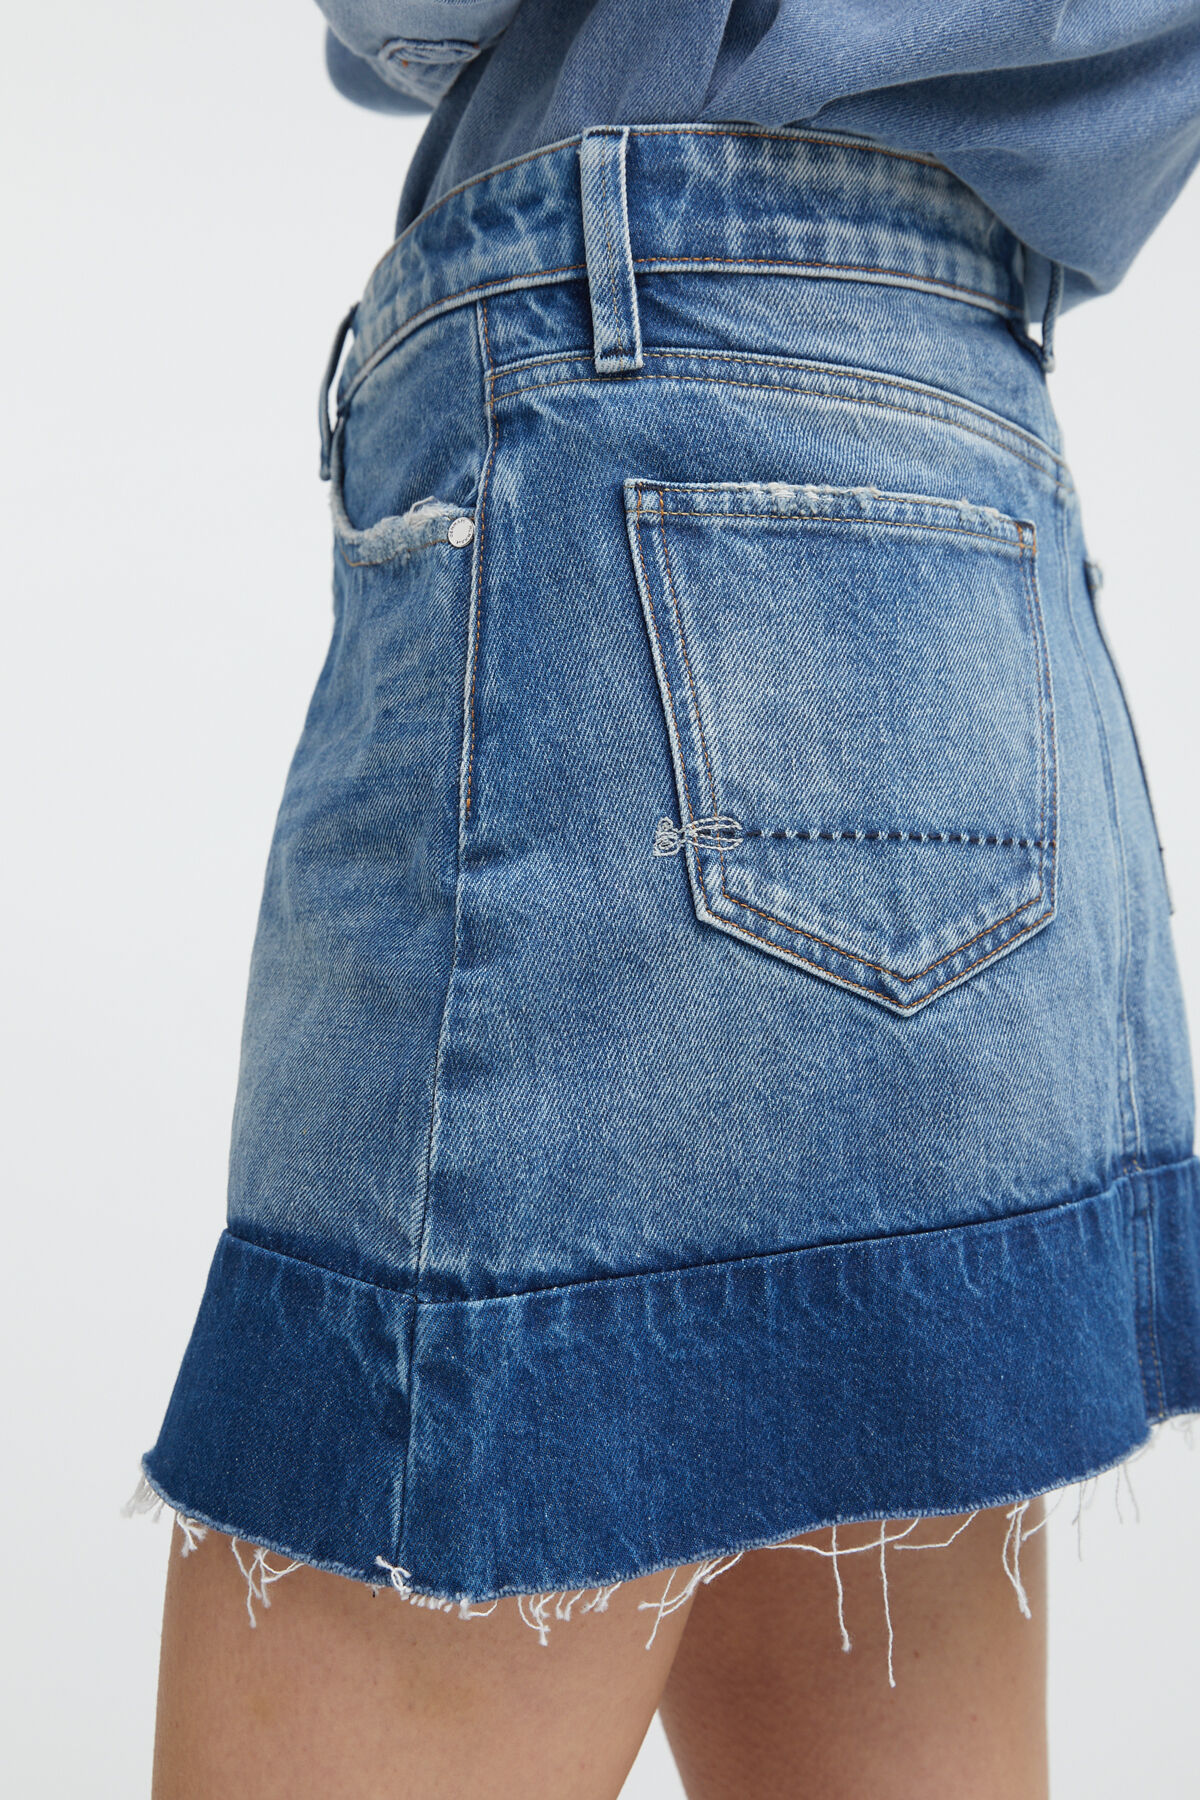 DENIM MIX SKIRT Stonewashed Denim - Mini